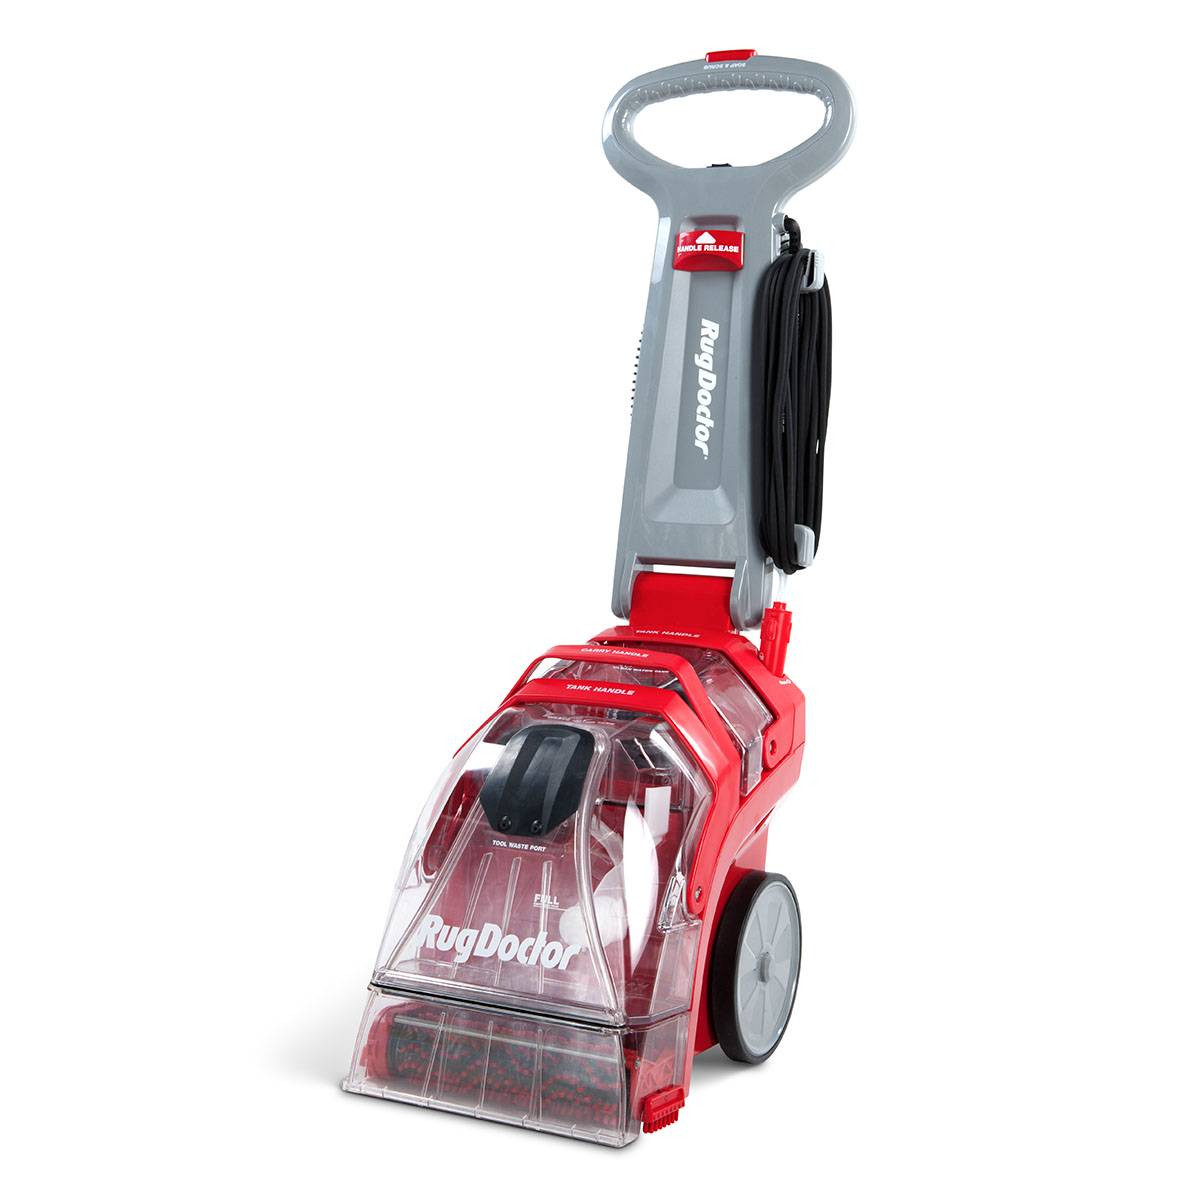 the best steam cleaner for hardwood floors of cleaning machine marvelous professional hardwood floor cleaning with regard to full size of cleaning machine xrug doctor deep carpet cleaner angle pagespeed ic hzhi0 hg8b